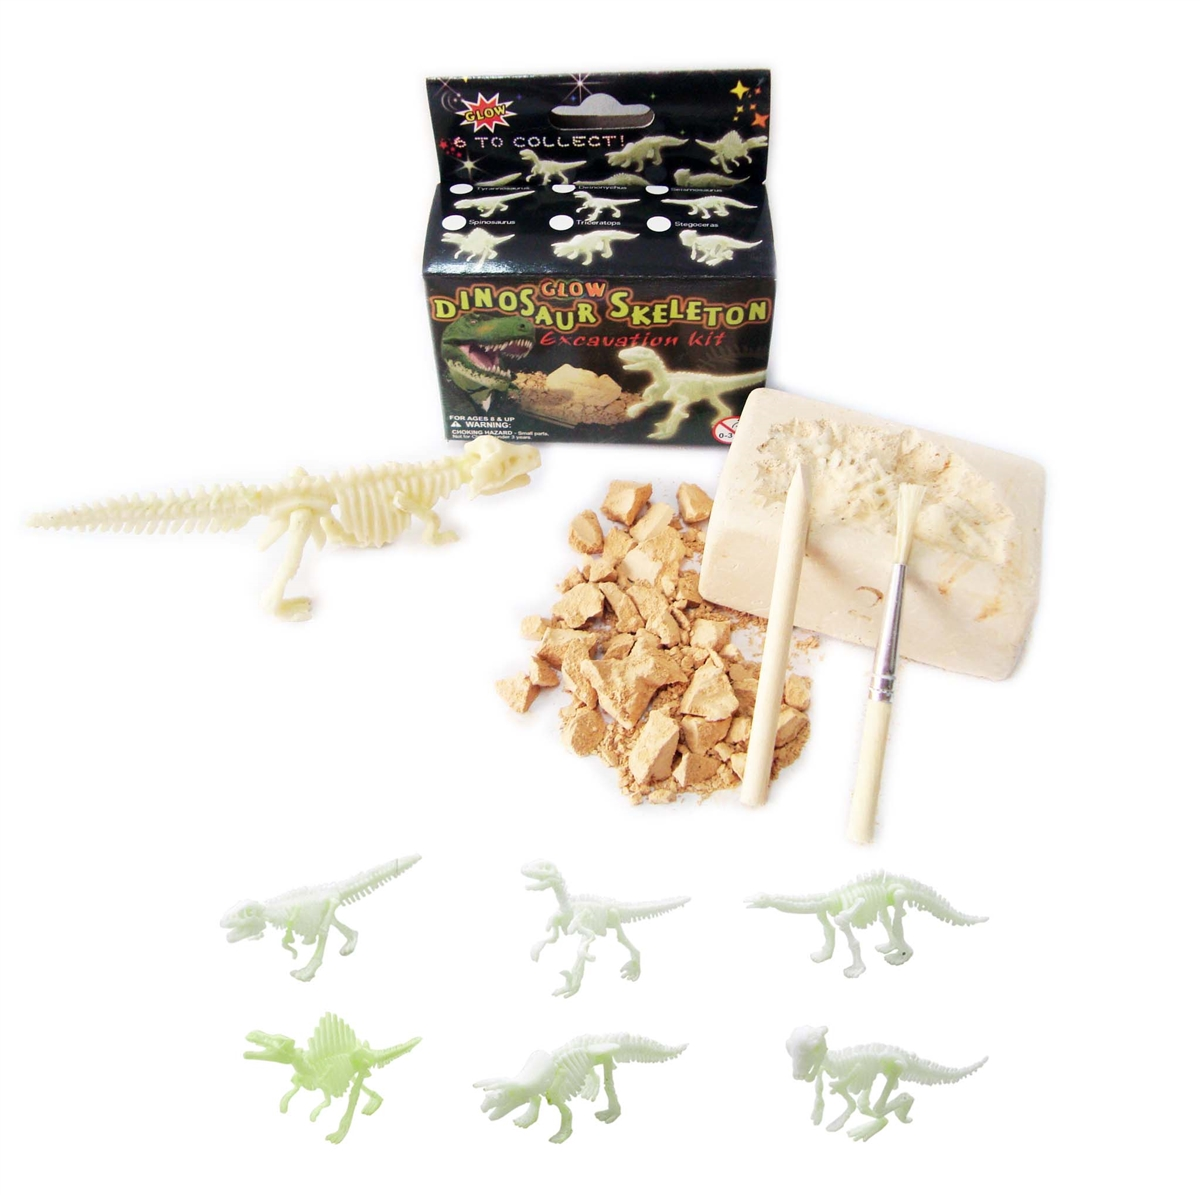 Small Excavation Kit - Glow in the Dark Dinosaur